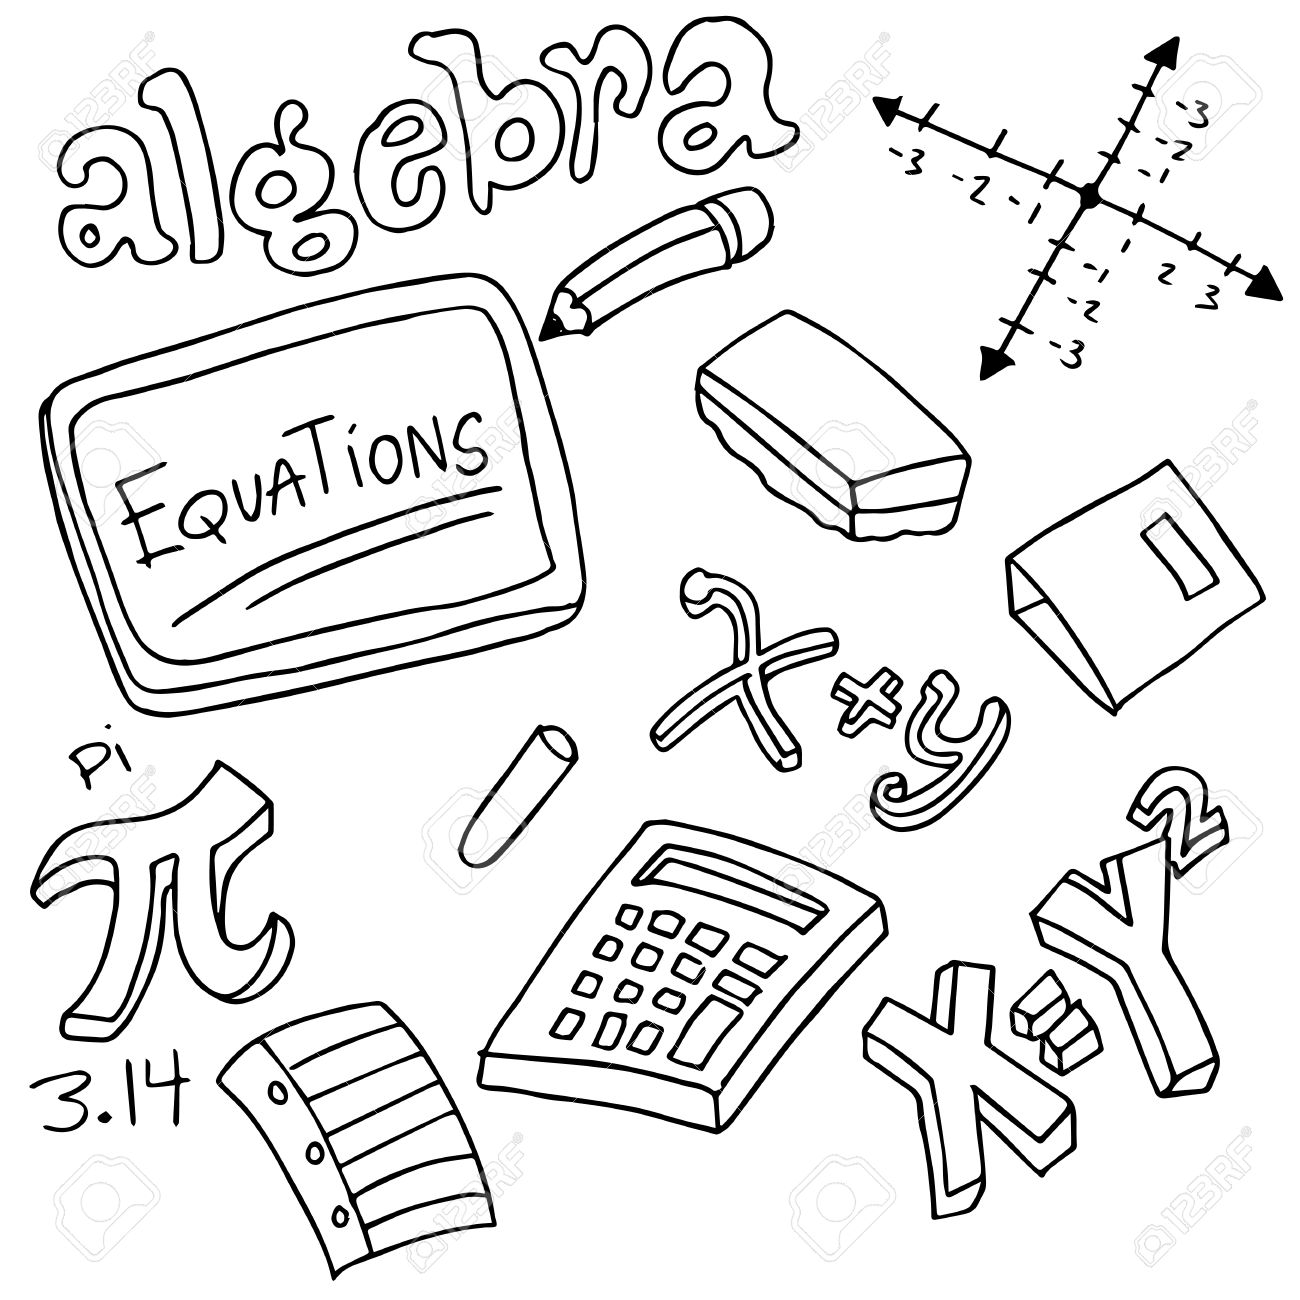 An Image Of Algebra Symbols And Objects Royalty Free Cliparts